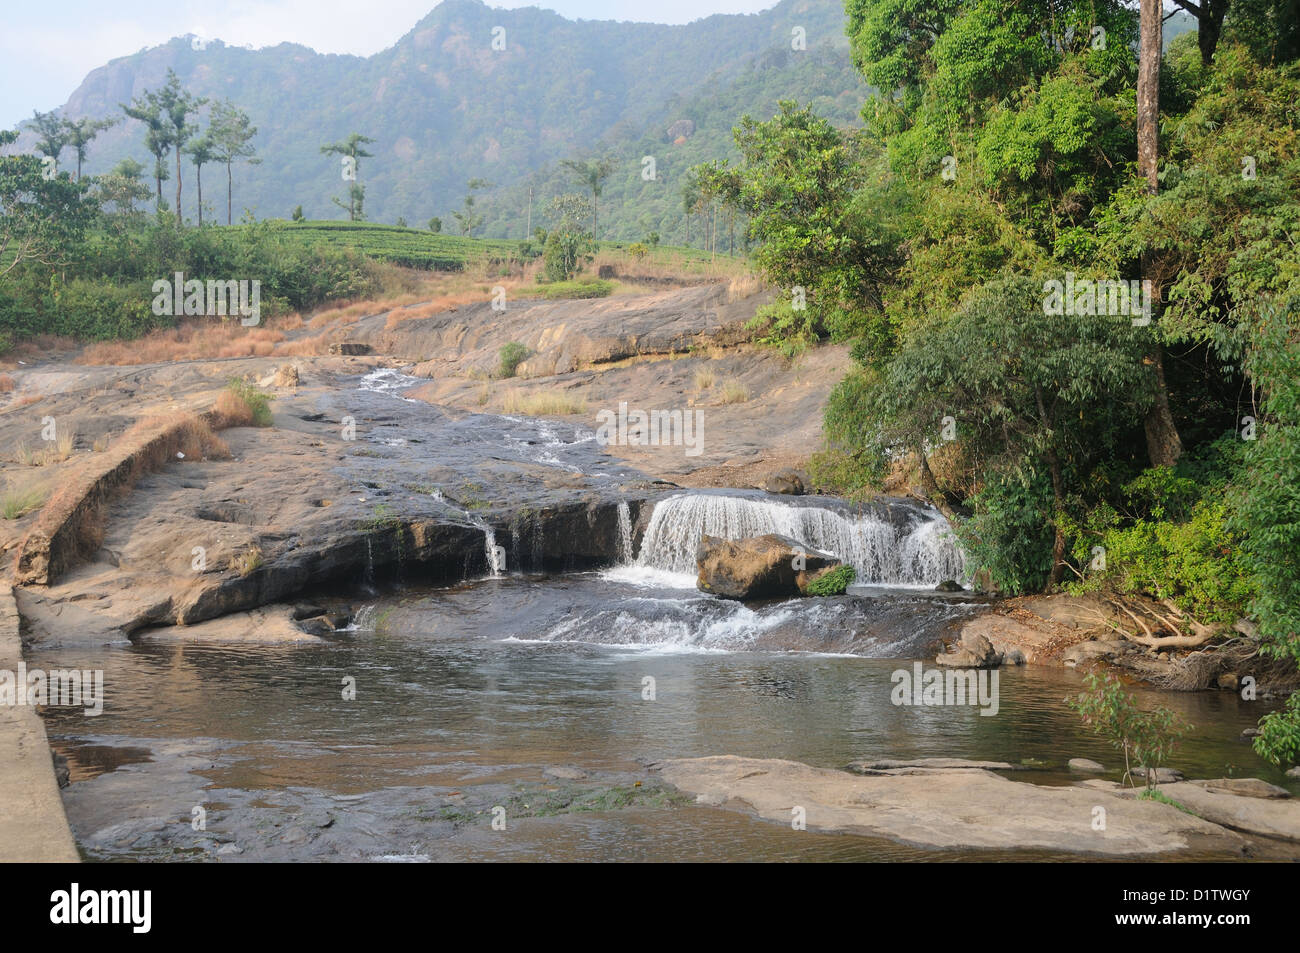 Munnar Kerala India  Munnar is a hill station on the Western Ghats, a range of mountains situated in the Idukki - Stock Image